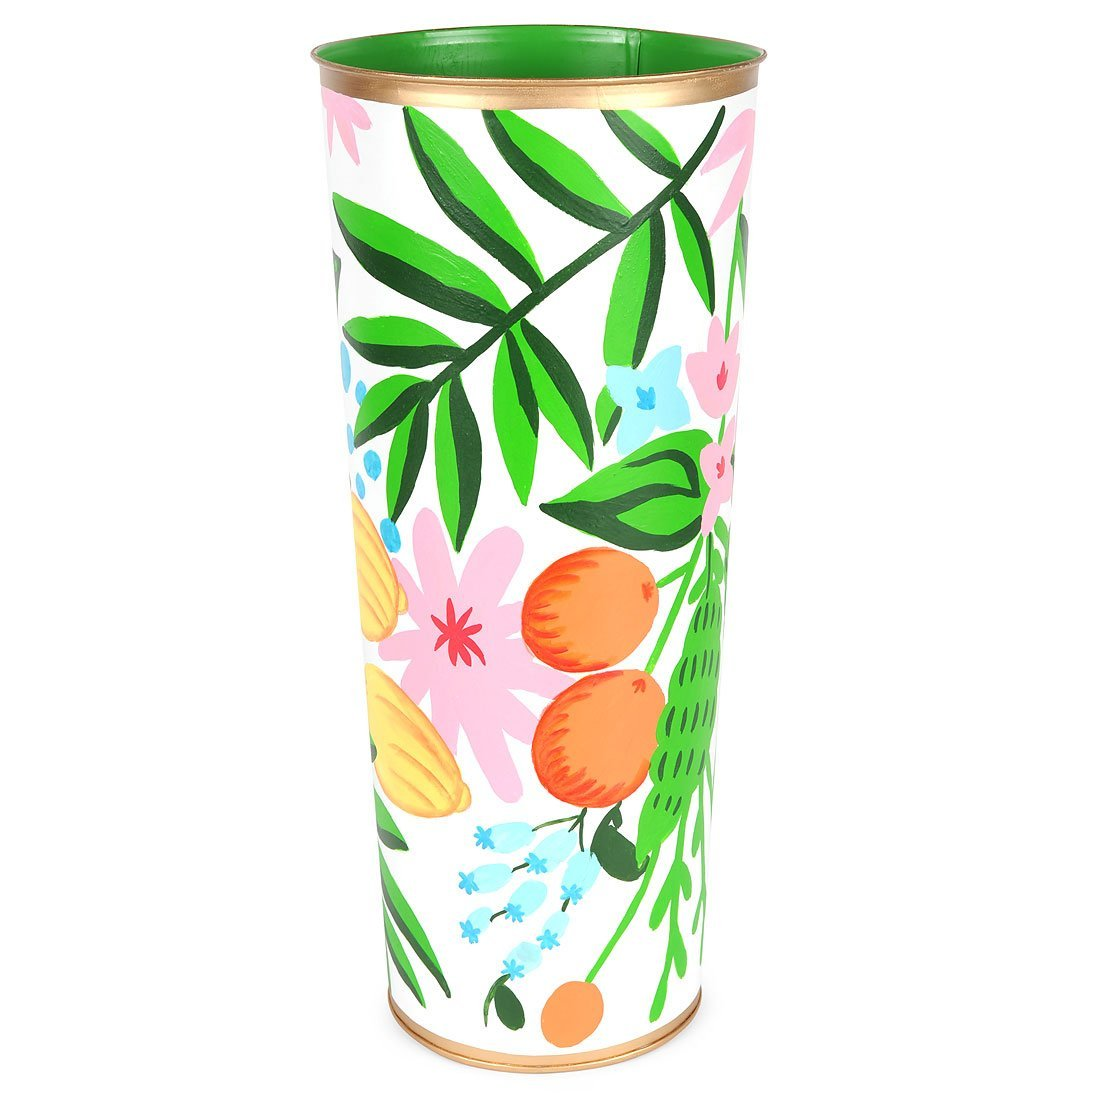 Fruit Floral Umbrella Stand